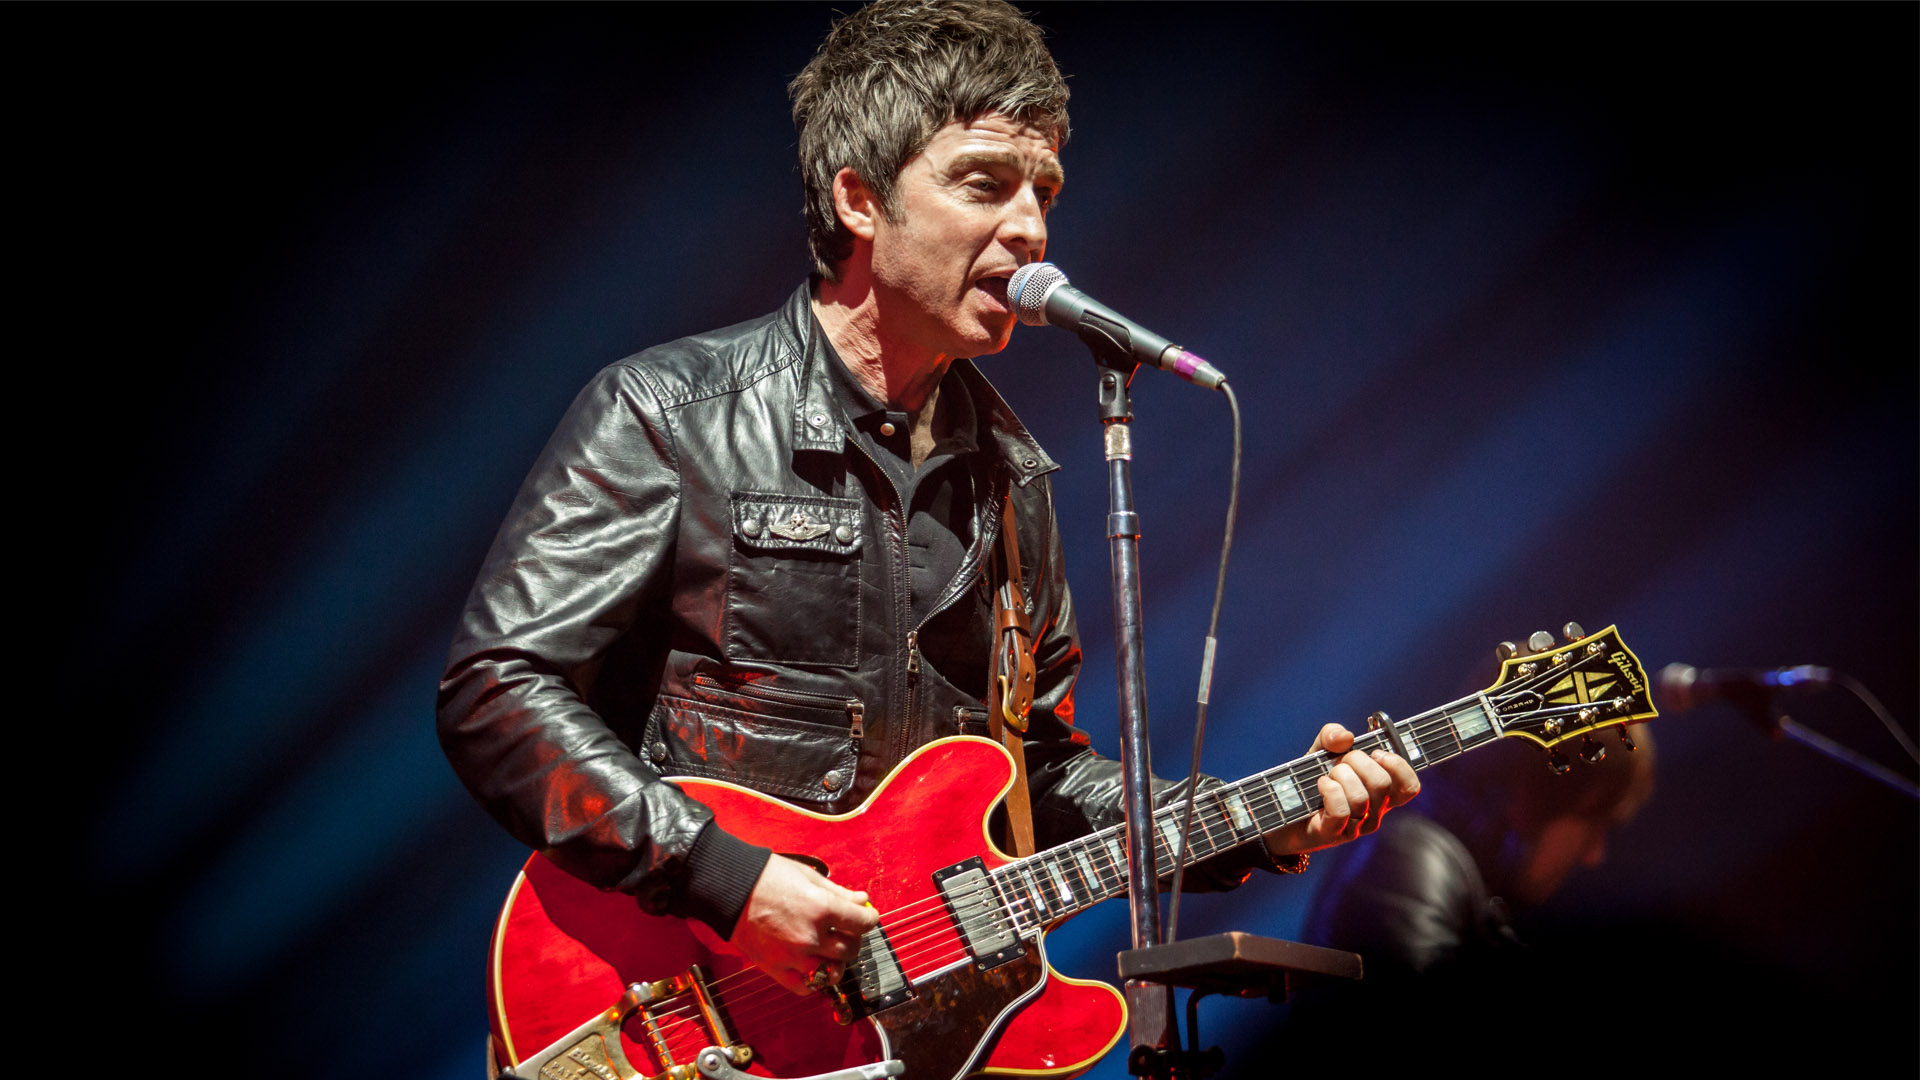 noel gallagher zenith paris 2018 Noel Gallagher was not at One Love Manchester charity show due to  noel gallagher zenith paris 2018